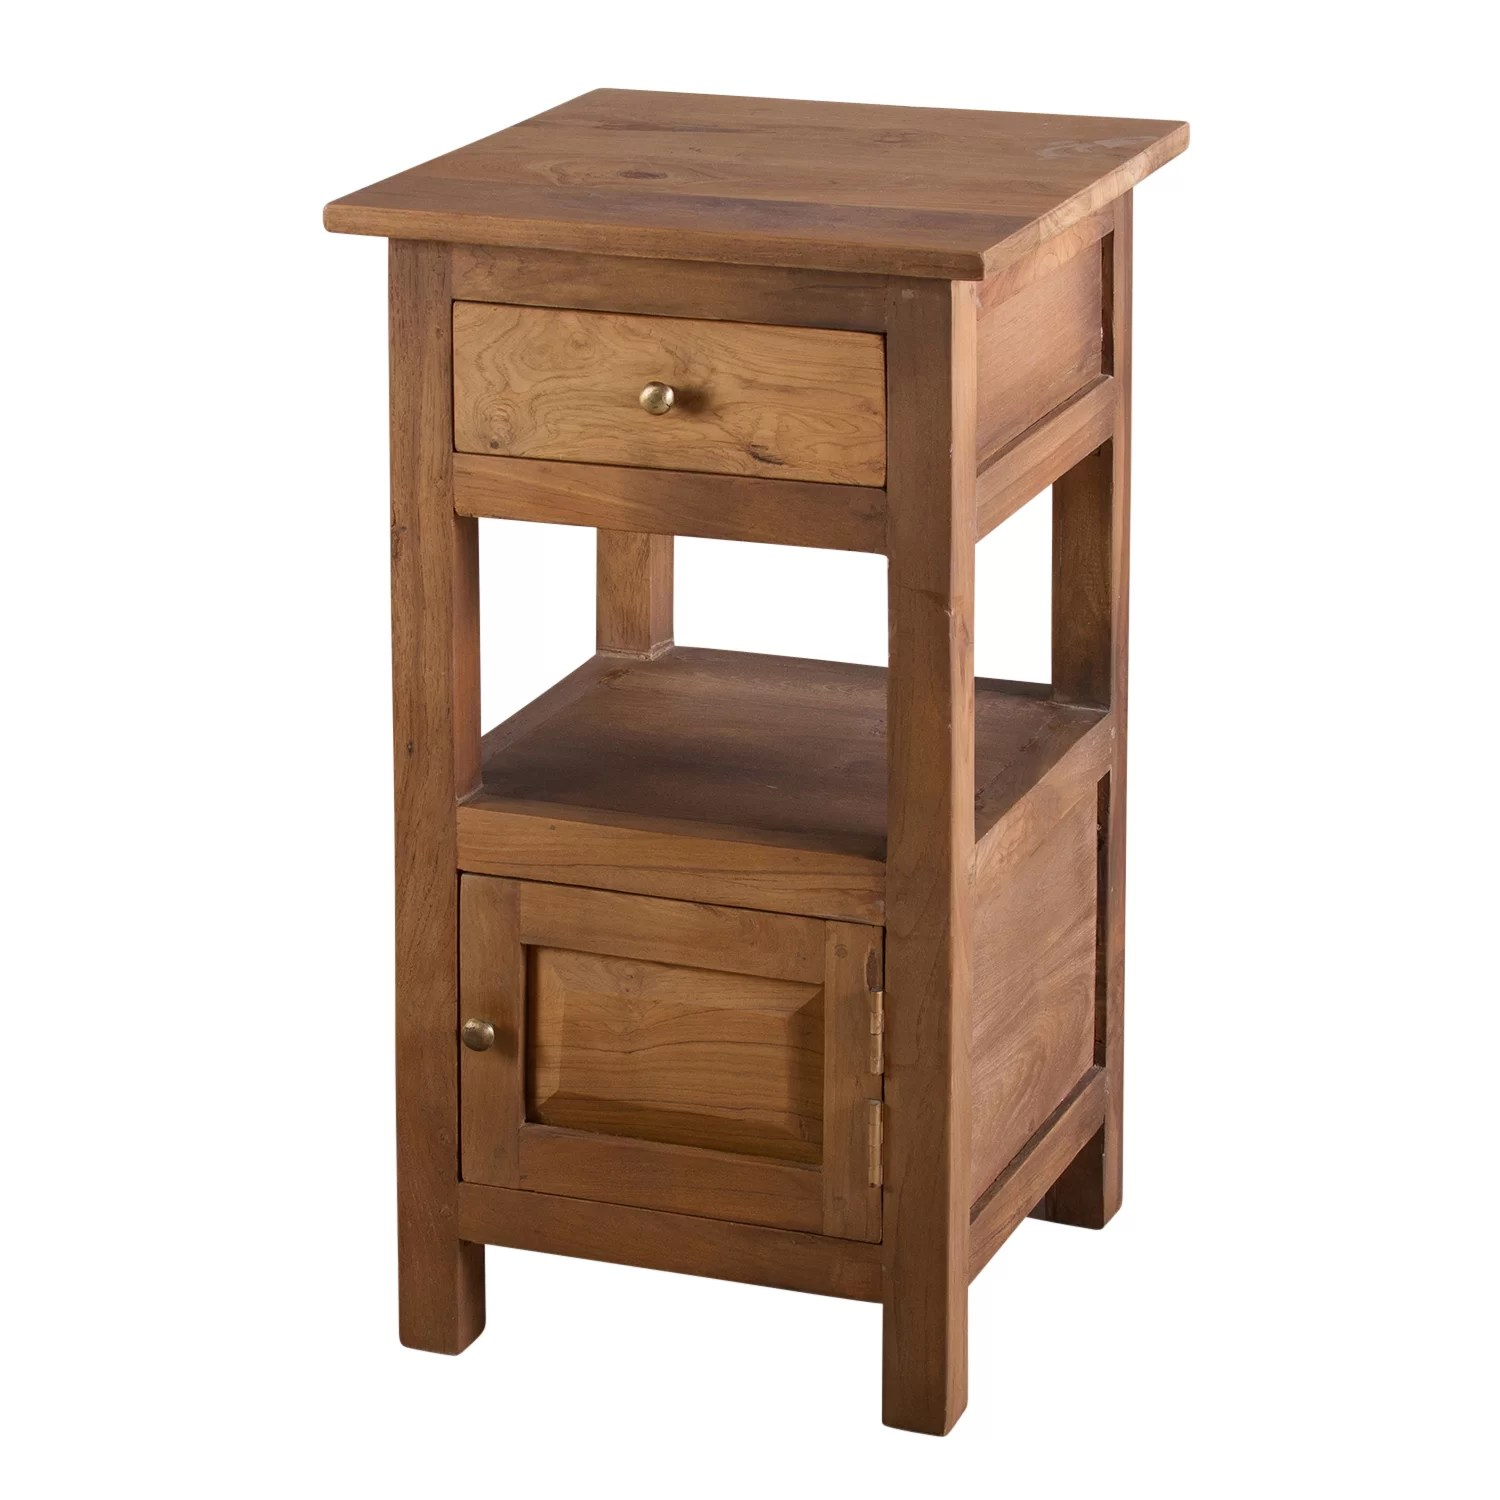 Bedside Table Designs Urban Designs Tanya 1 Drawer Bedside Table Wayfair Uk